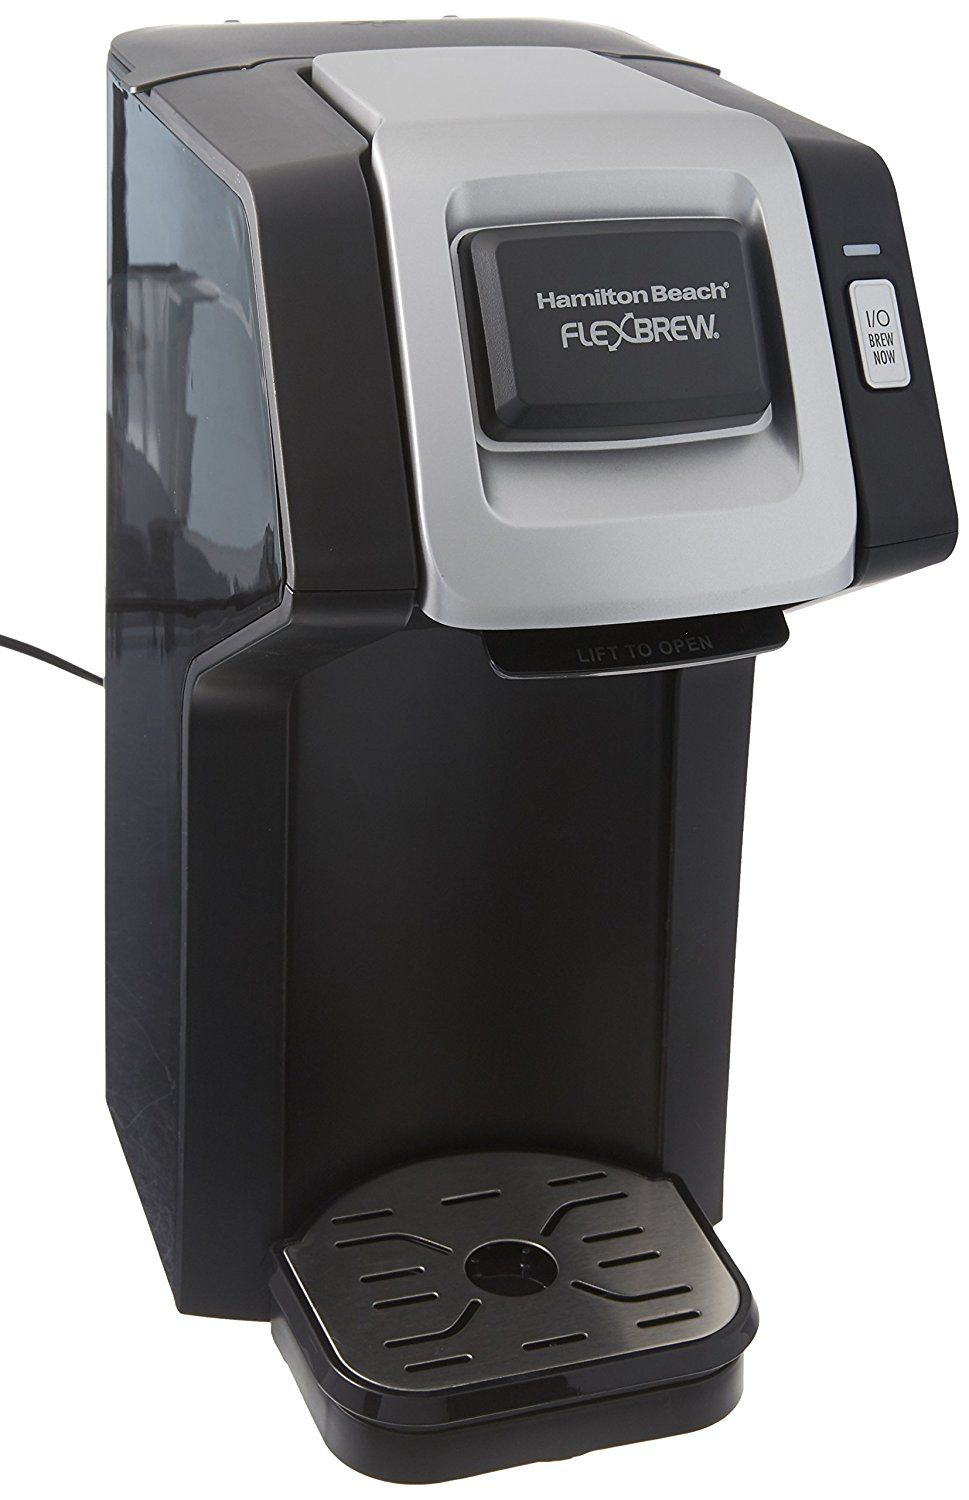 Amazon Com Hamilton Beach Flexbrew Single Serve Coffee Maker For